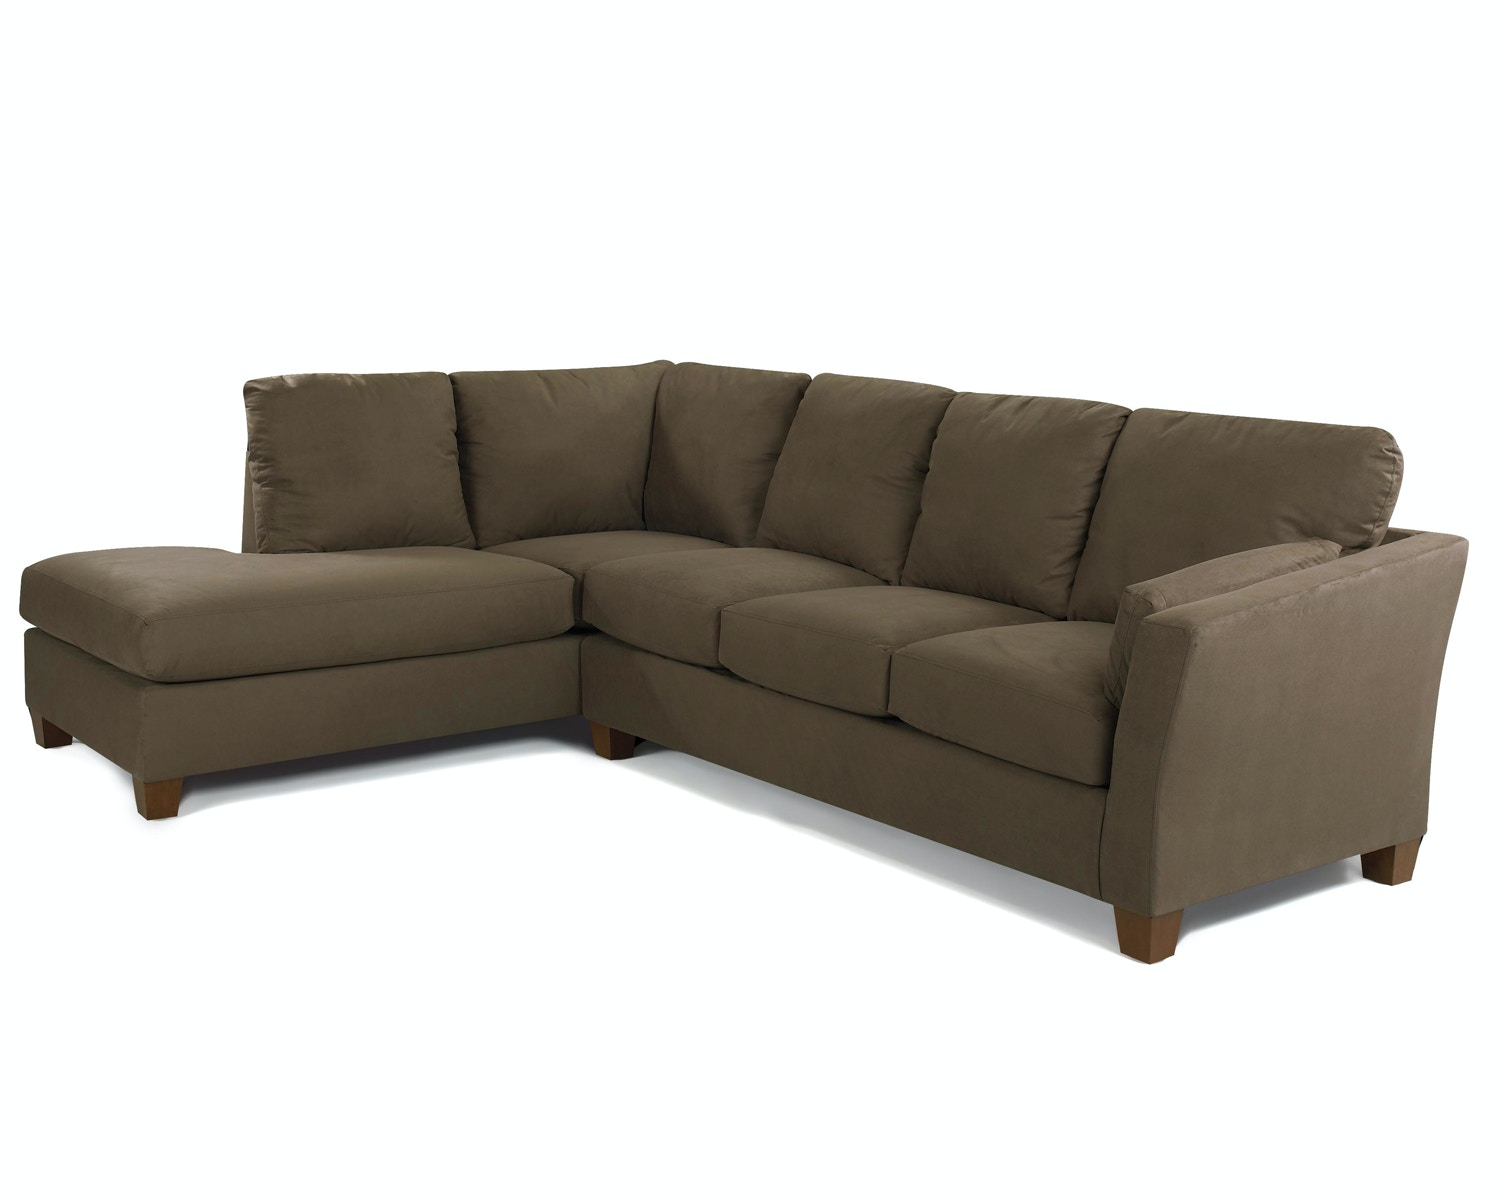 Simple Elegance Drew Microfiber Sectional P18880